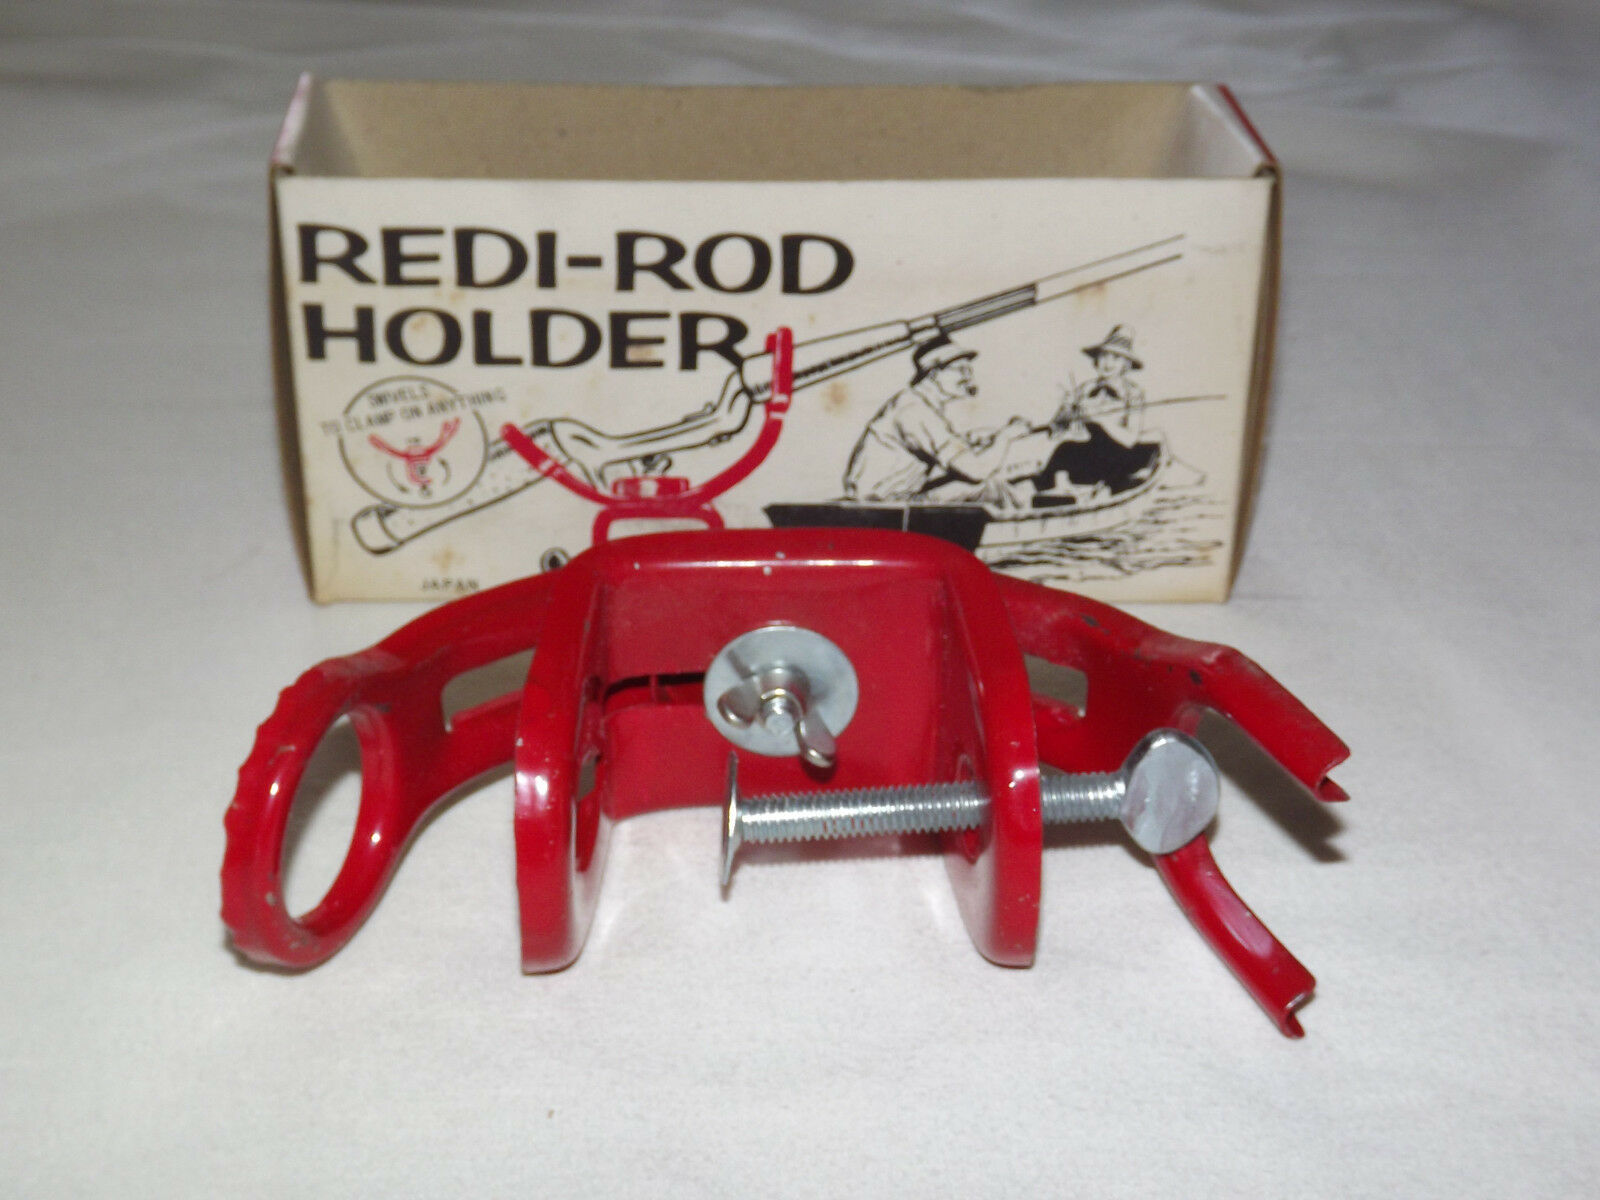 VINTAGE  1960-70S FISHING ROD BOAT IDEAL'S REDI-ROD HOLDER NEW IN BOX  official authorization